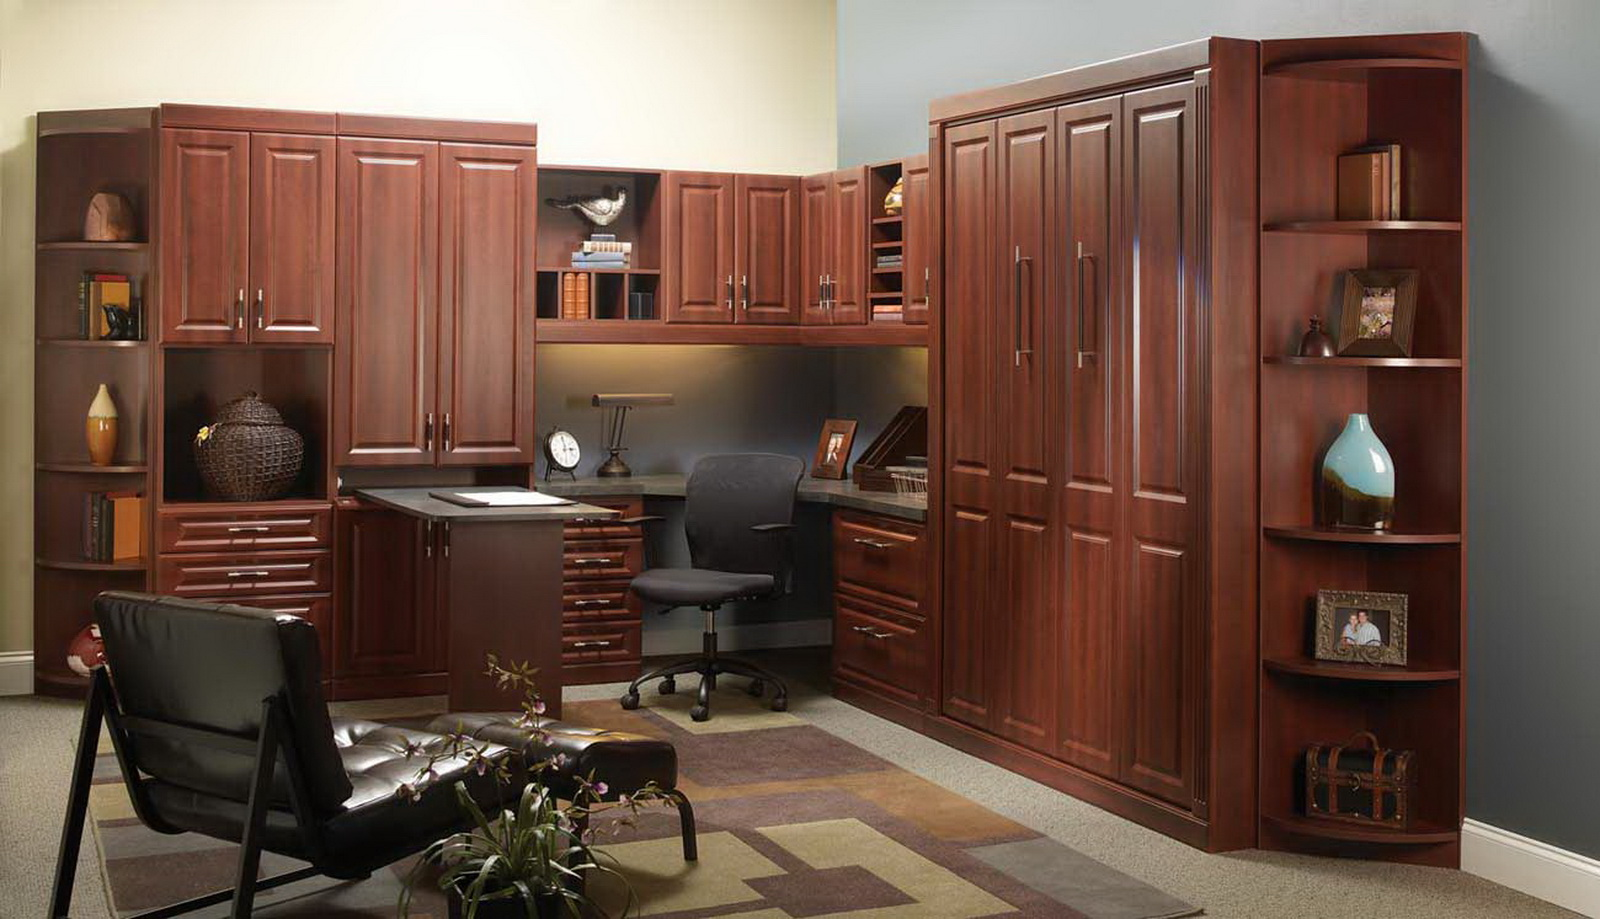 Home Office Furniture Knoxville Tn Stunning Bedroom Interior Designing For Goodly Interior